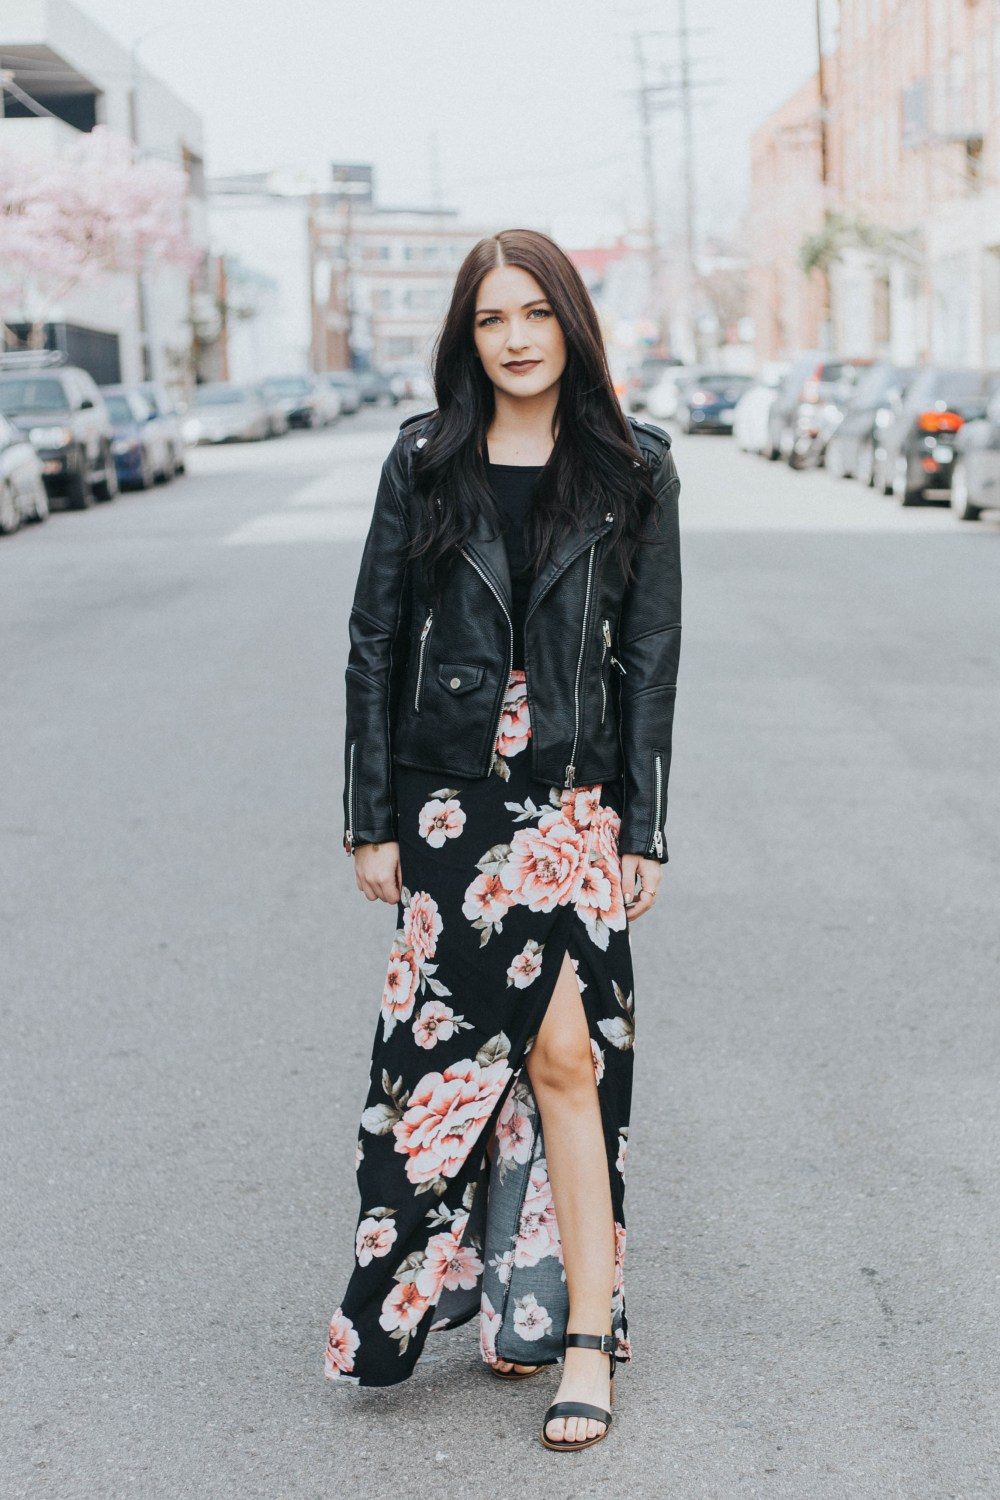 One Piece, Two Ways: Black Leather Jacket | Twinspiration